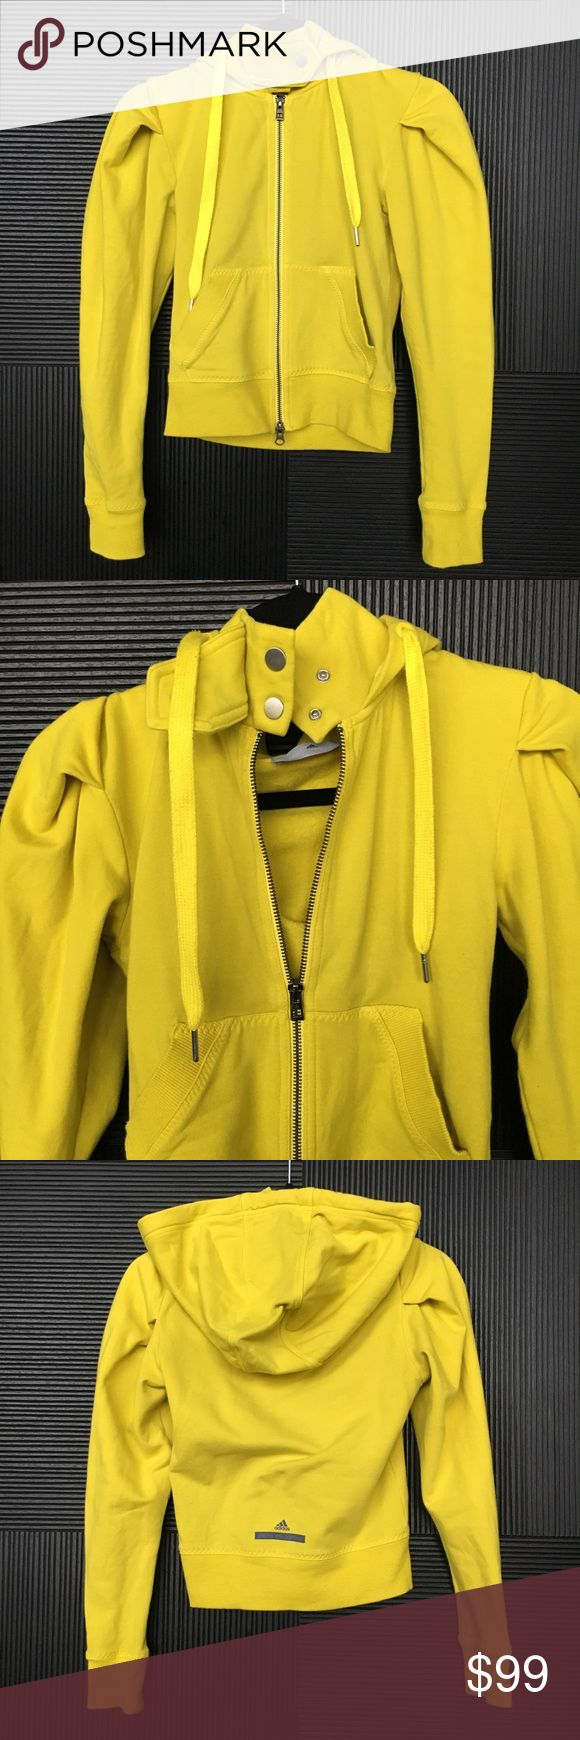 Stella McCartney x Adidas Zip Up Hoodie in Yellow Amazing detailing and design sweatshirt, zip up, snap buttons, draw string hoodie, neon yellow Adidas by Stella McCartney Tops Sweatshirts & Hoodies